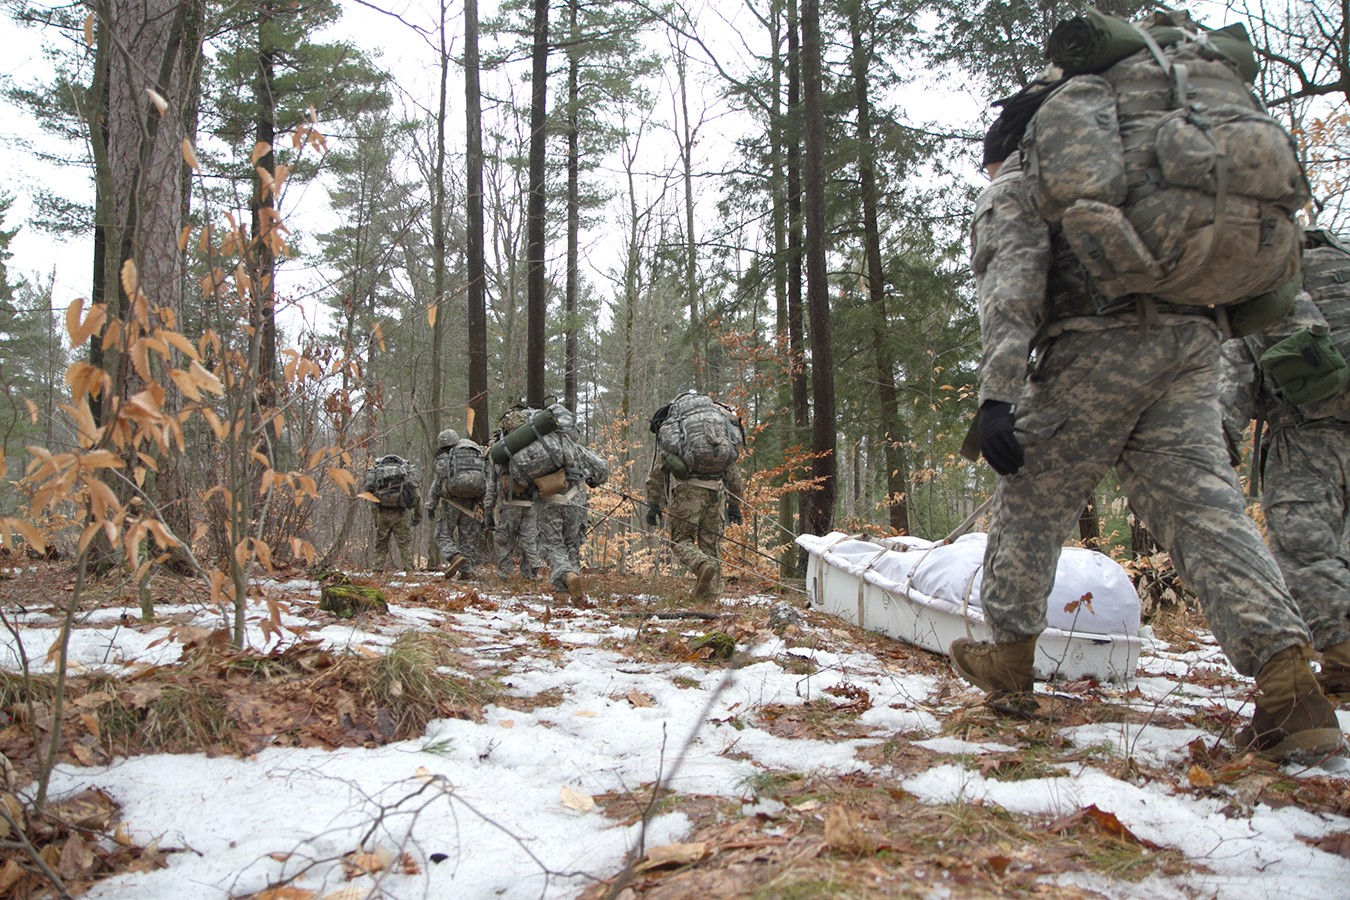 Arctic' zone classification at Fort Drum means Soldiers will